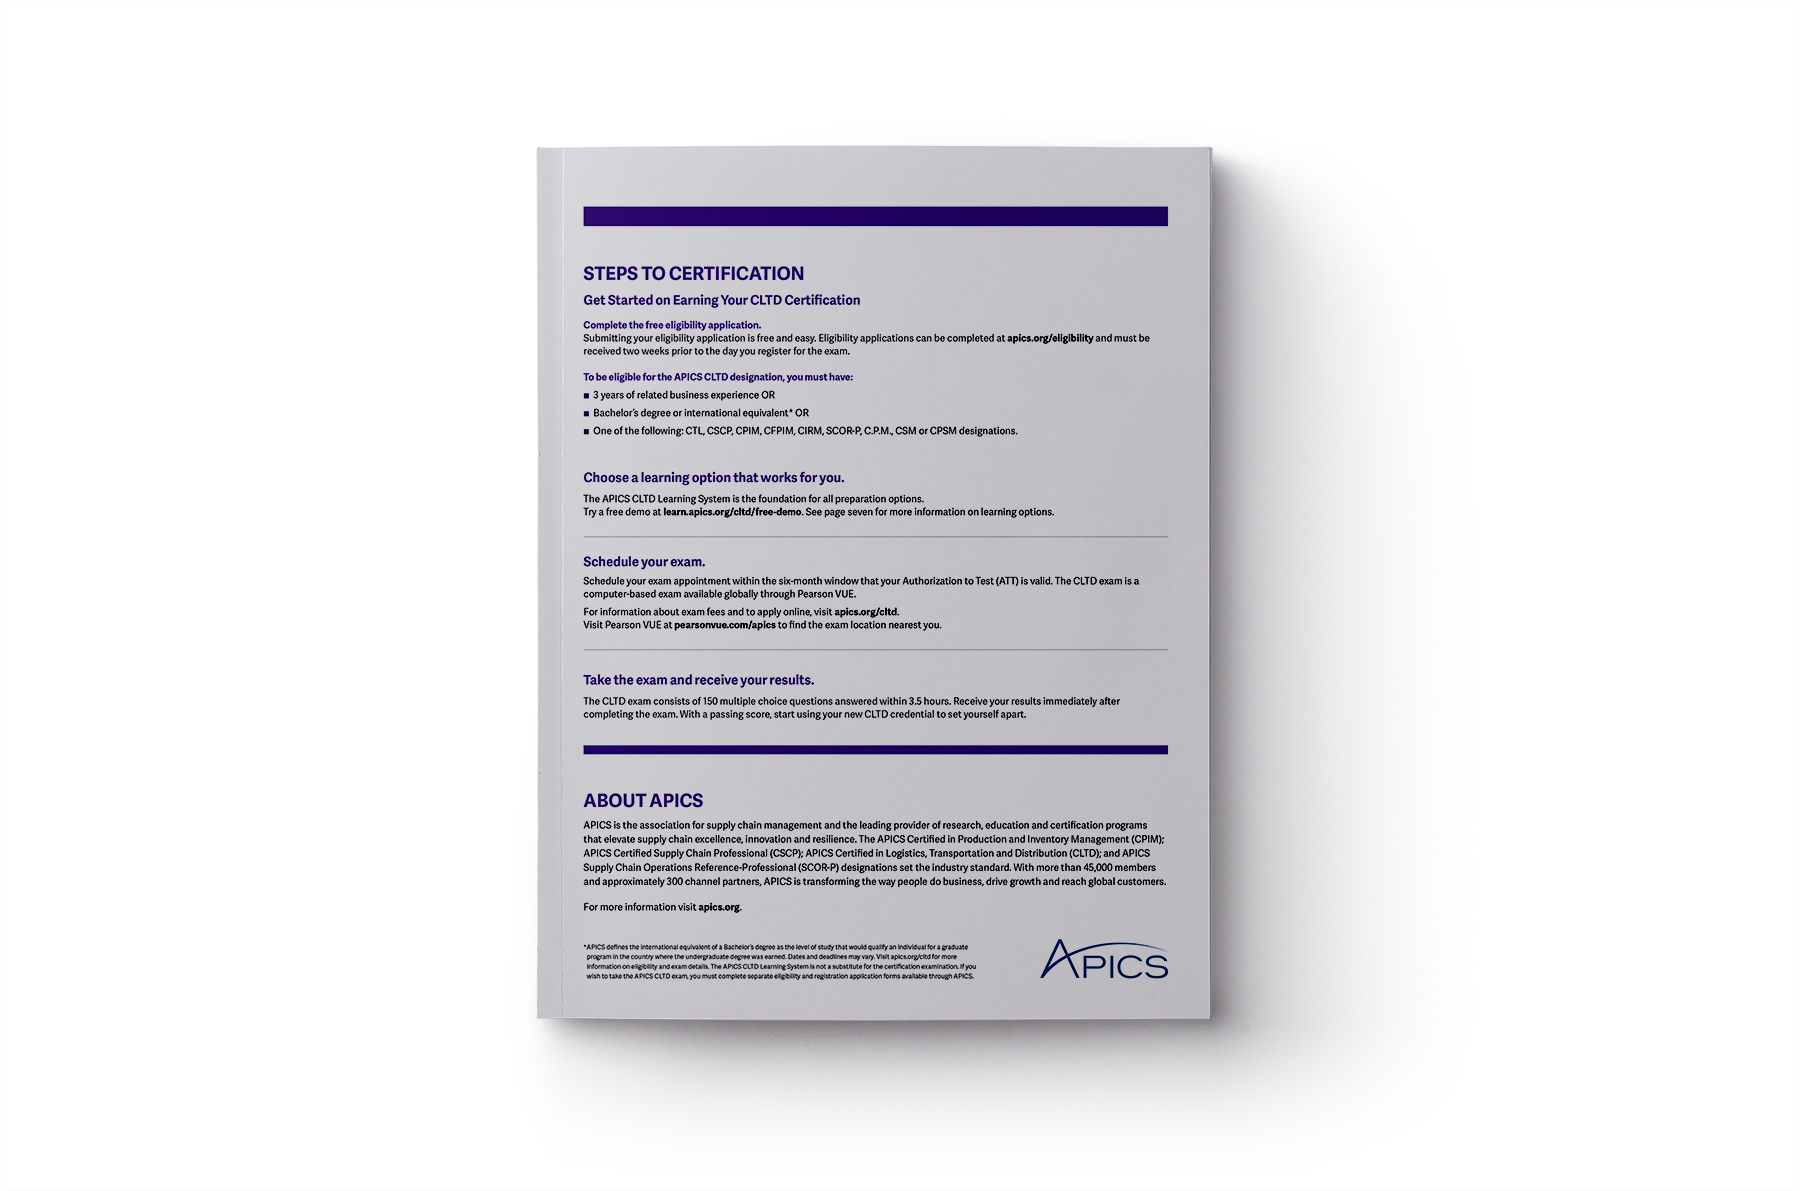 Apics_CLTD-Brochure_BackCover.jpg